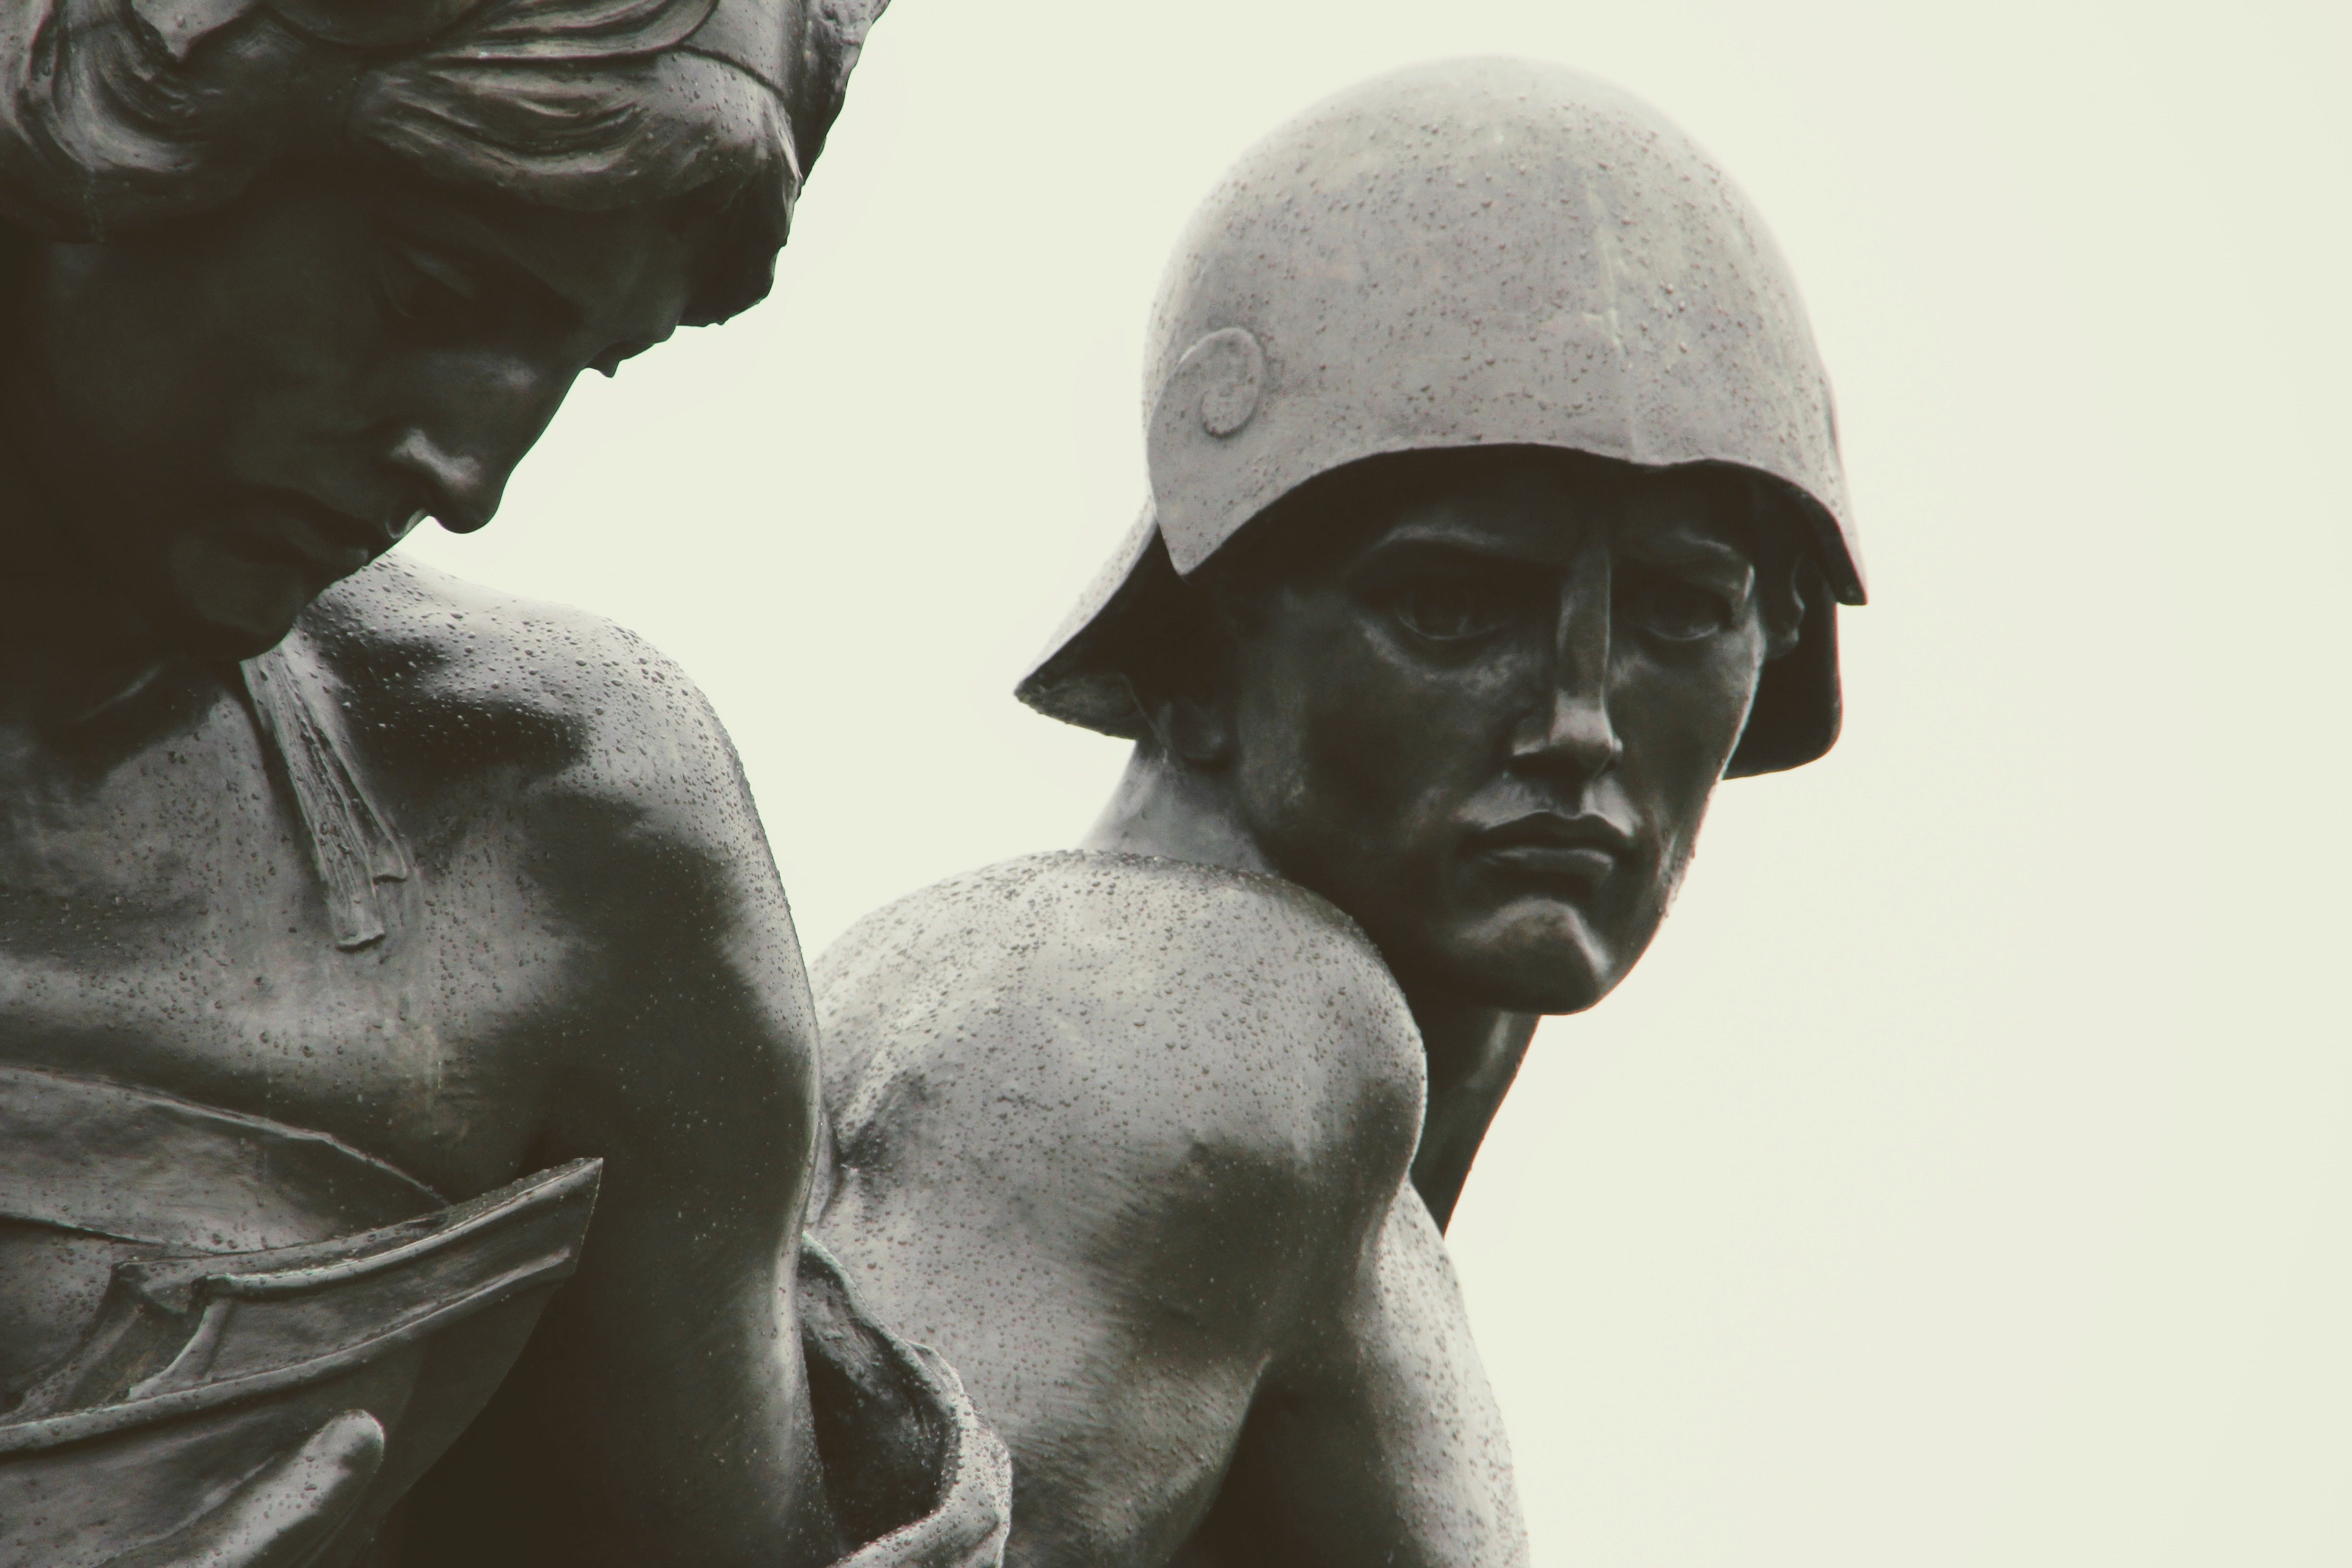 Free stock photo of statue, monument, sculpture, figure